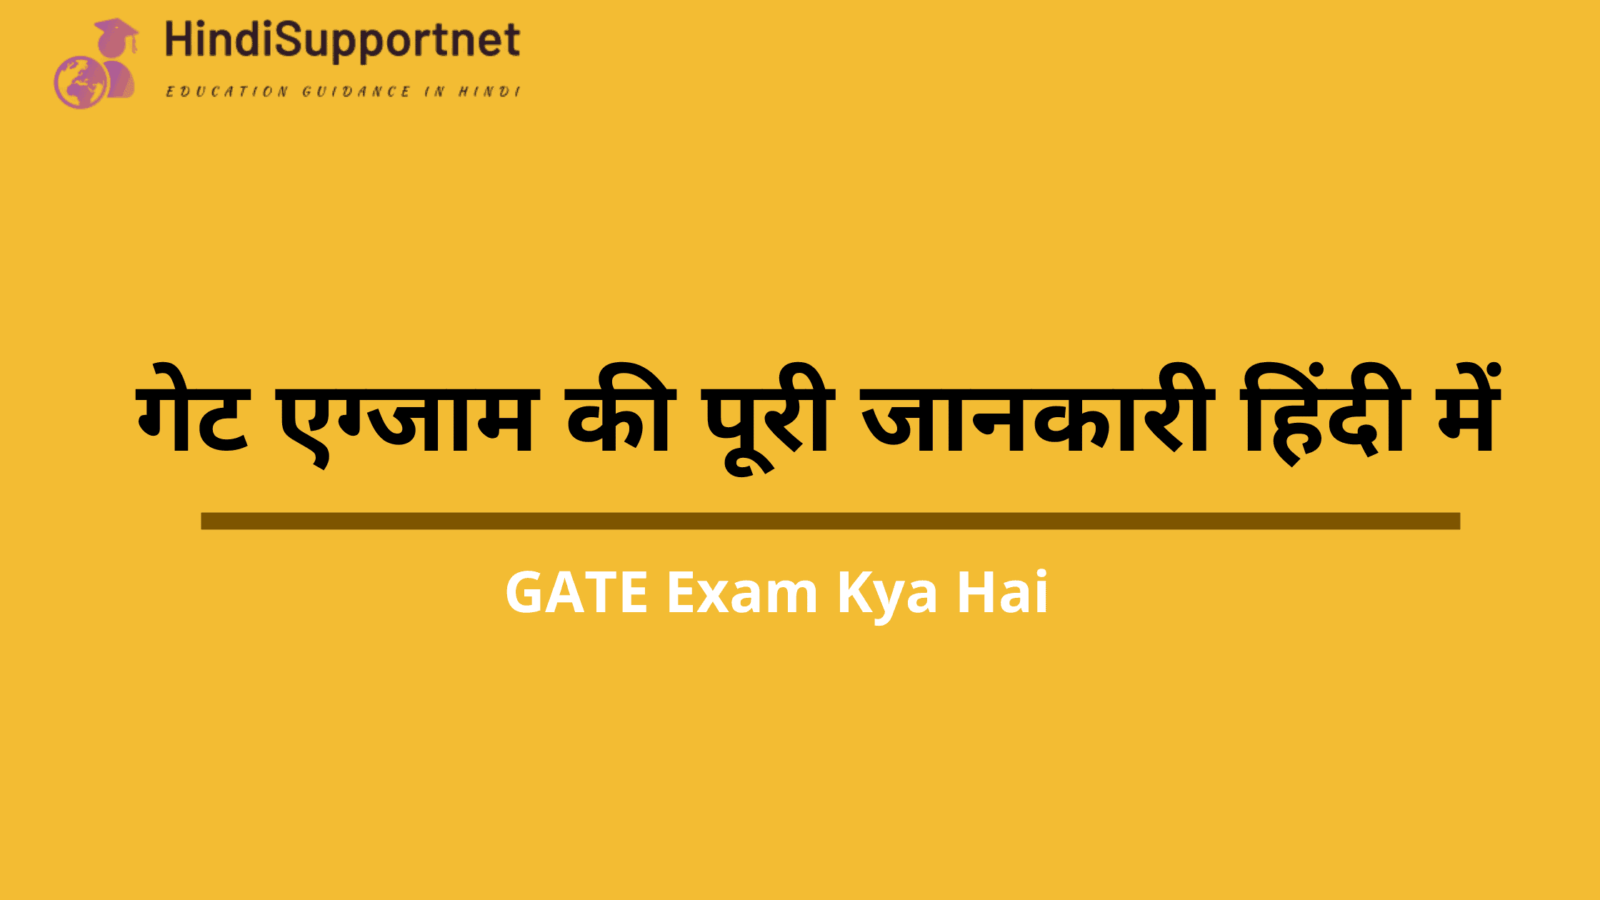 GATE-Exam ki Puri Jankari